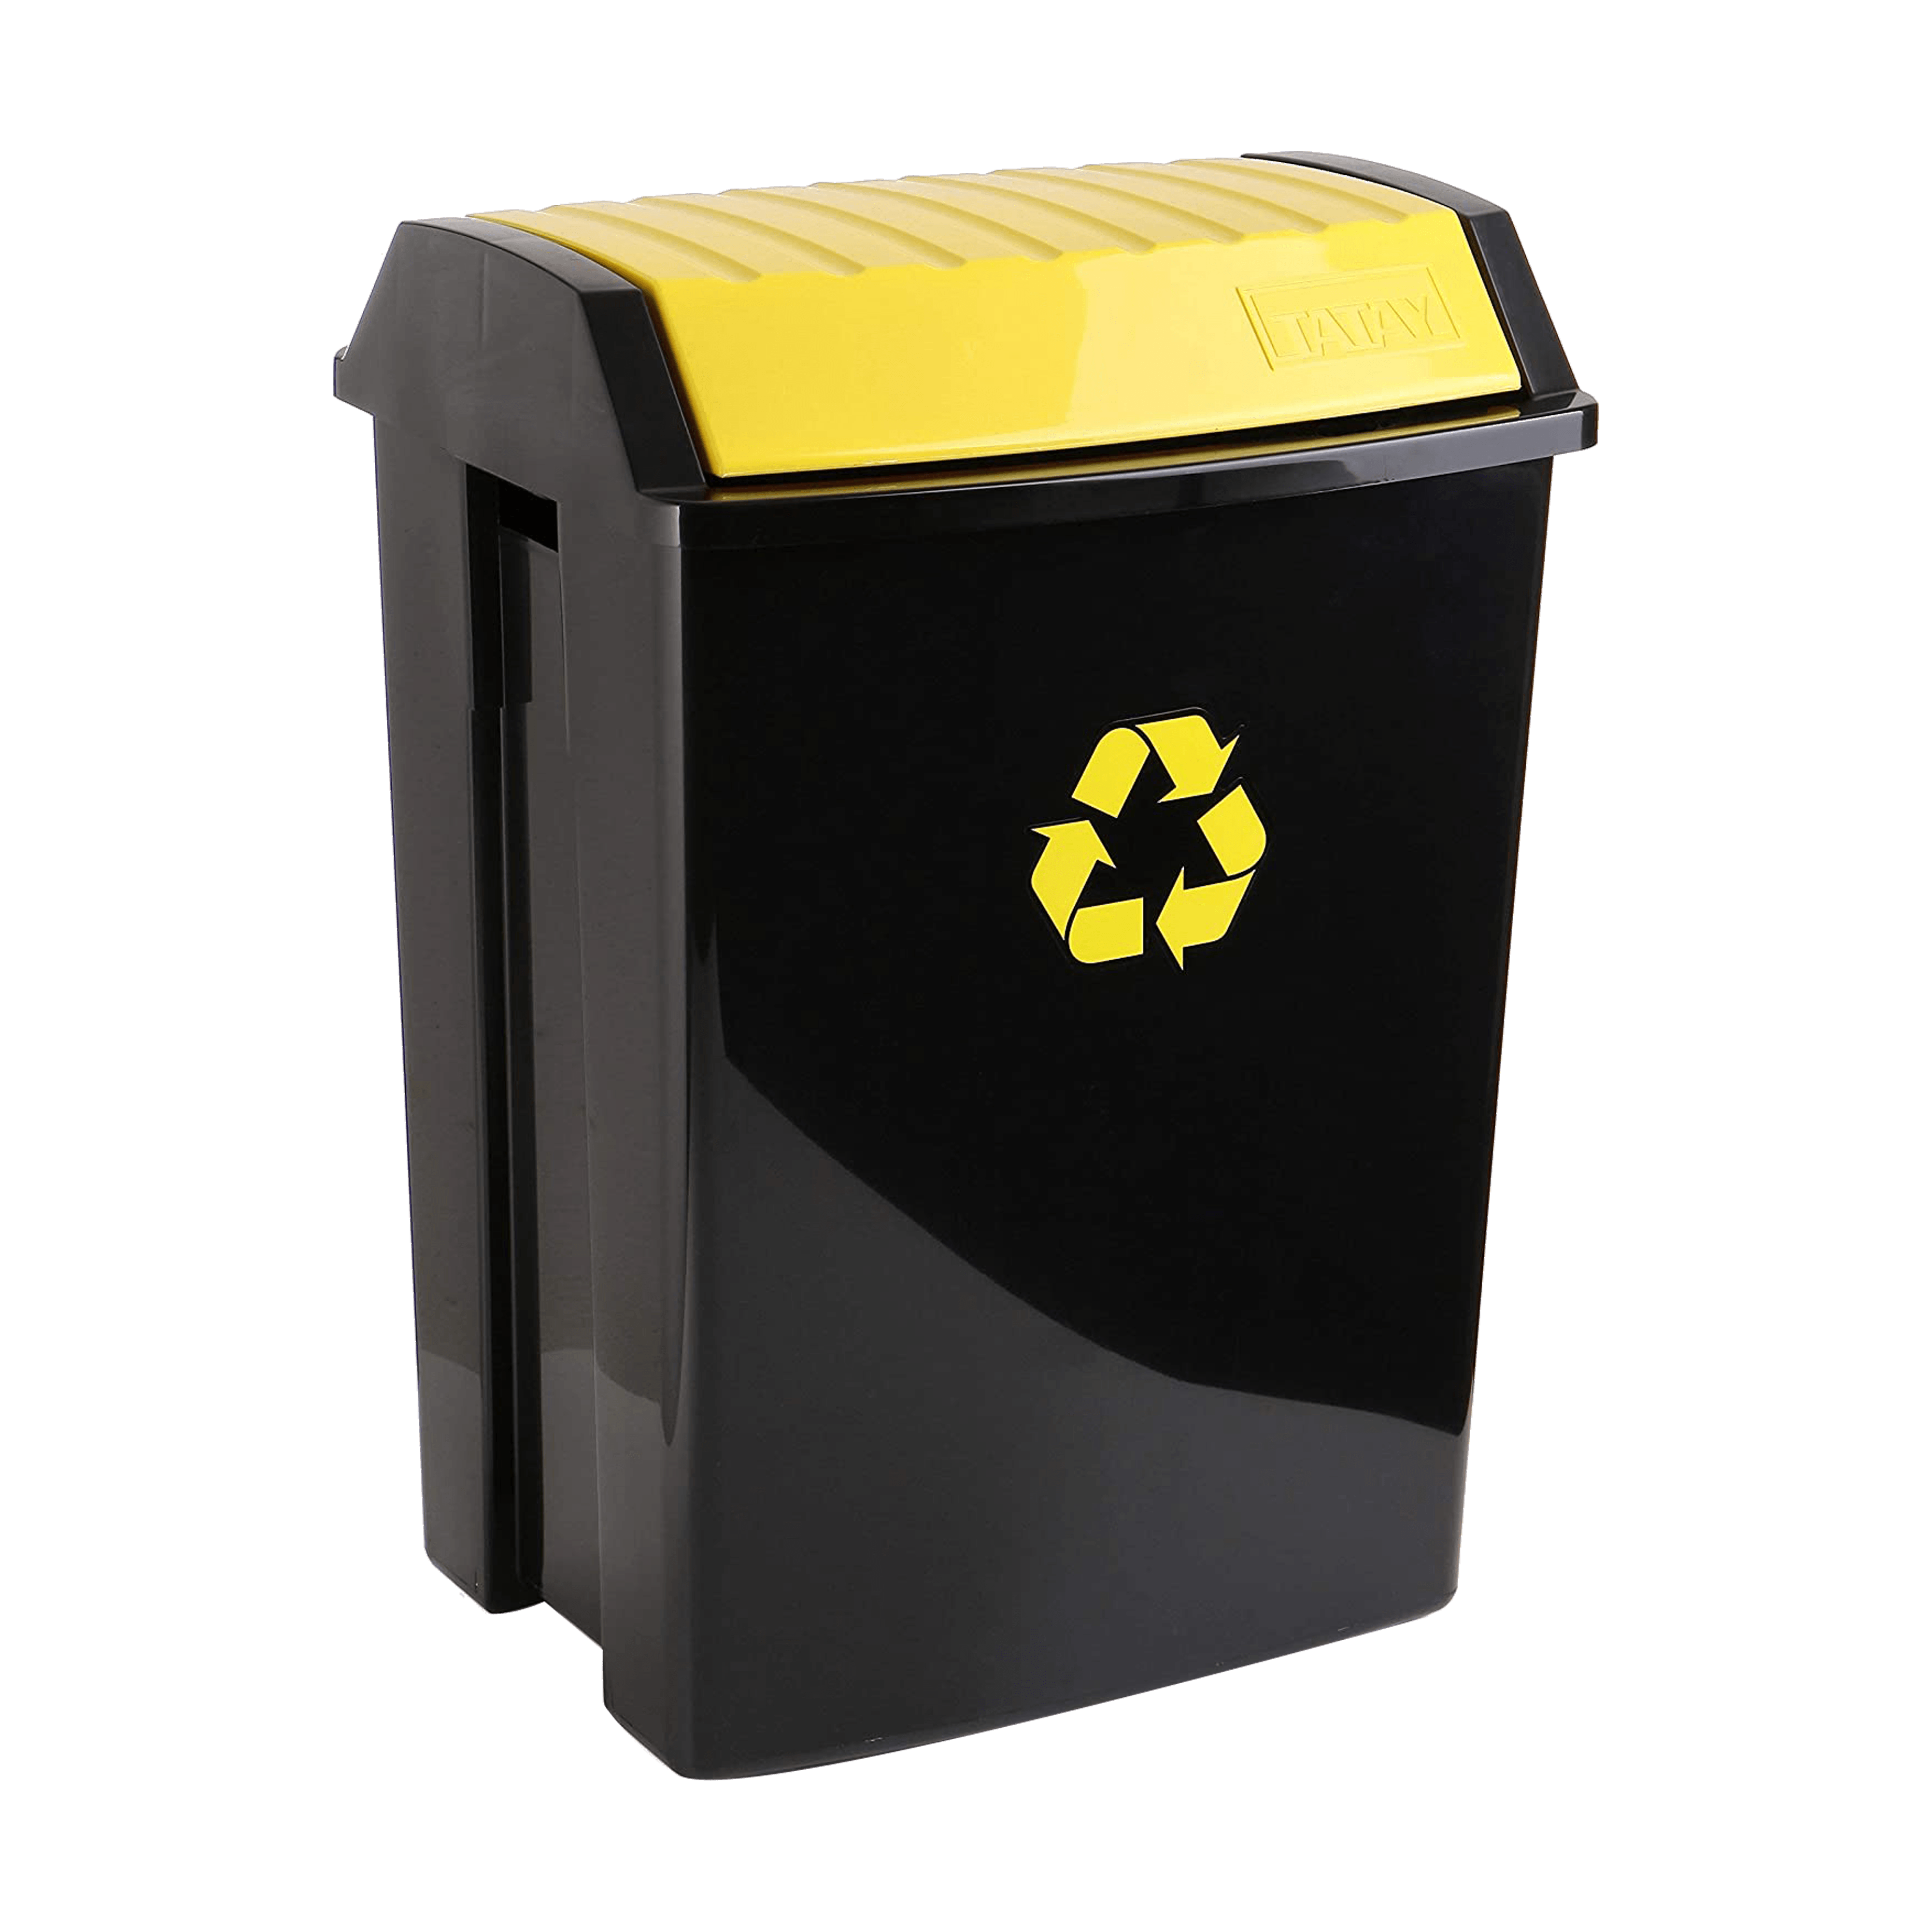 TATAY Trash Bin • Yellow • 40.4cm X 33.5cm X57cm • 50 liter capacity • Anti-UVA for a longer durability • Suitable for both indoors and outdoors Code: 1102302